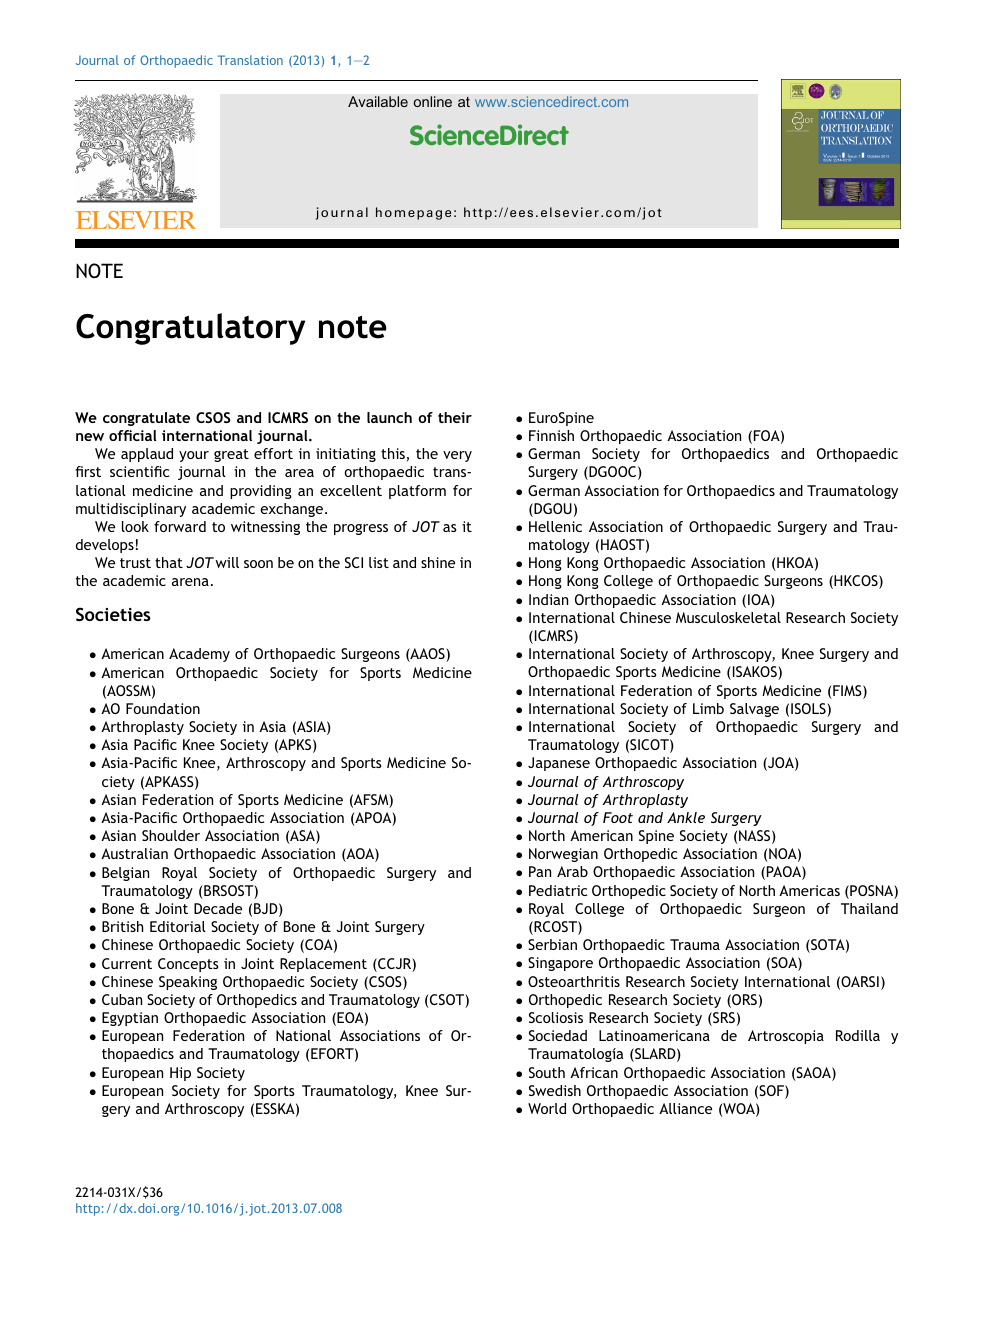 Congratulatory note – topic of research paper in Clinical